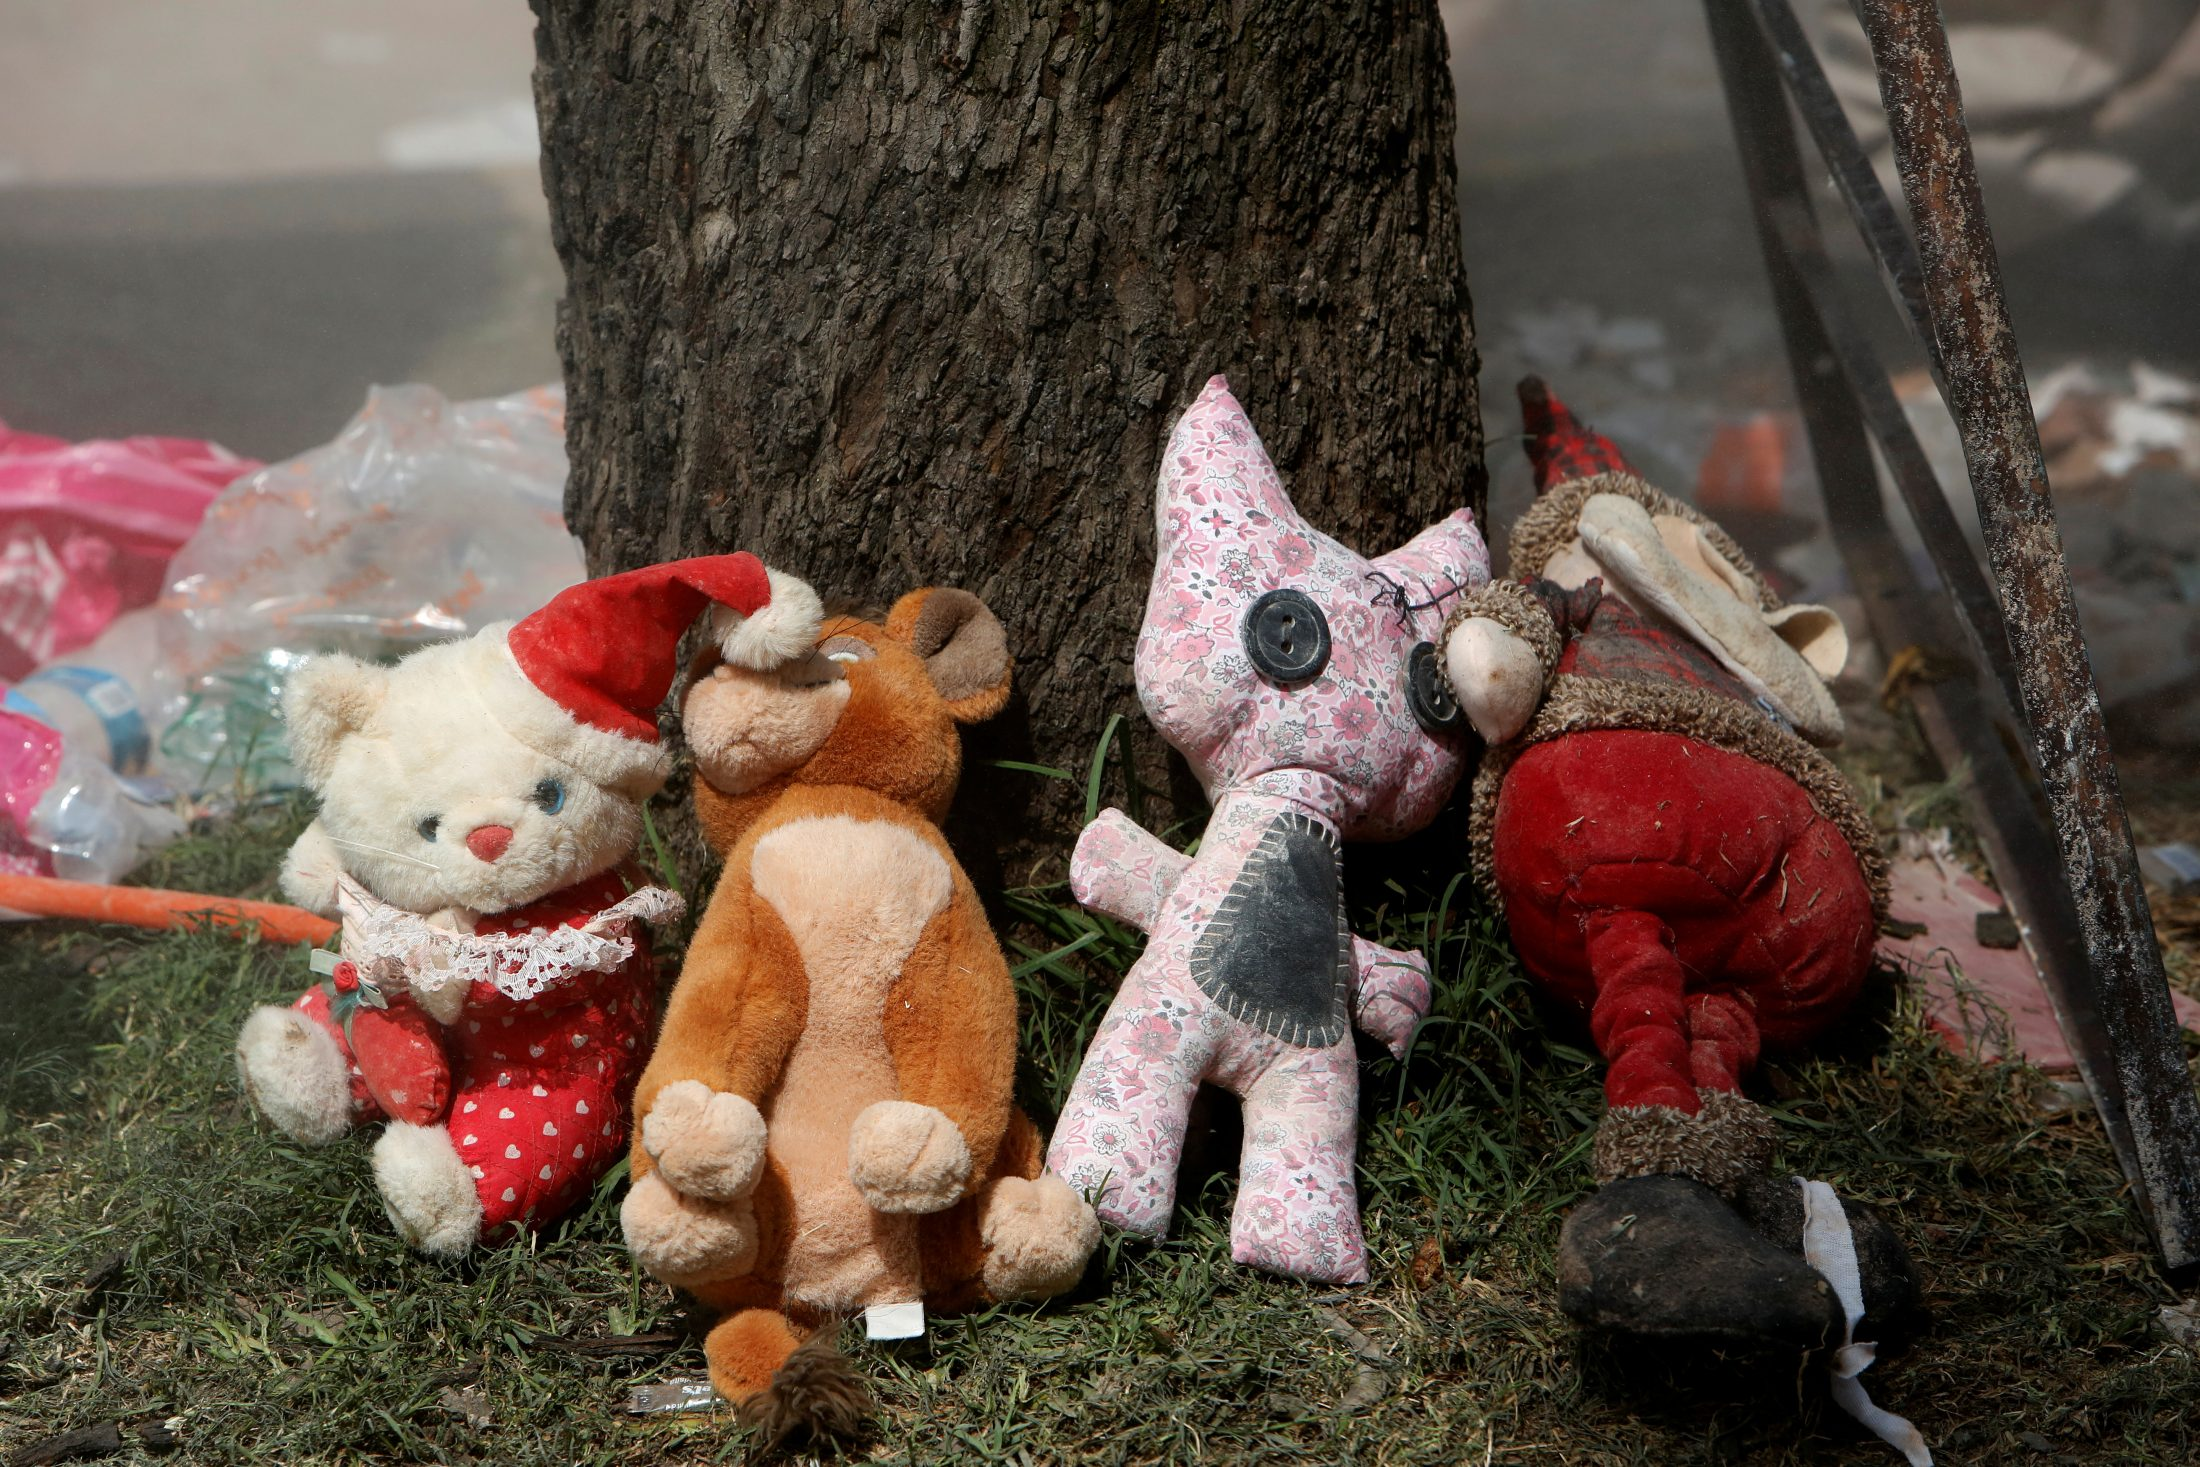 Toys are recovered from the rubble of a collapsed building. Photo by Ginnette Riquelme/Reuters